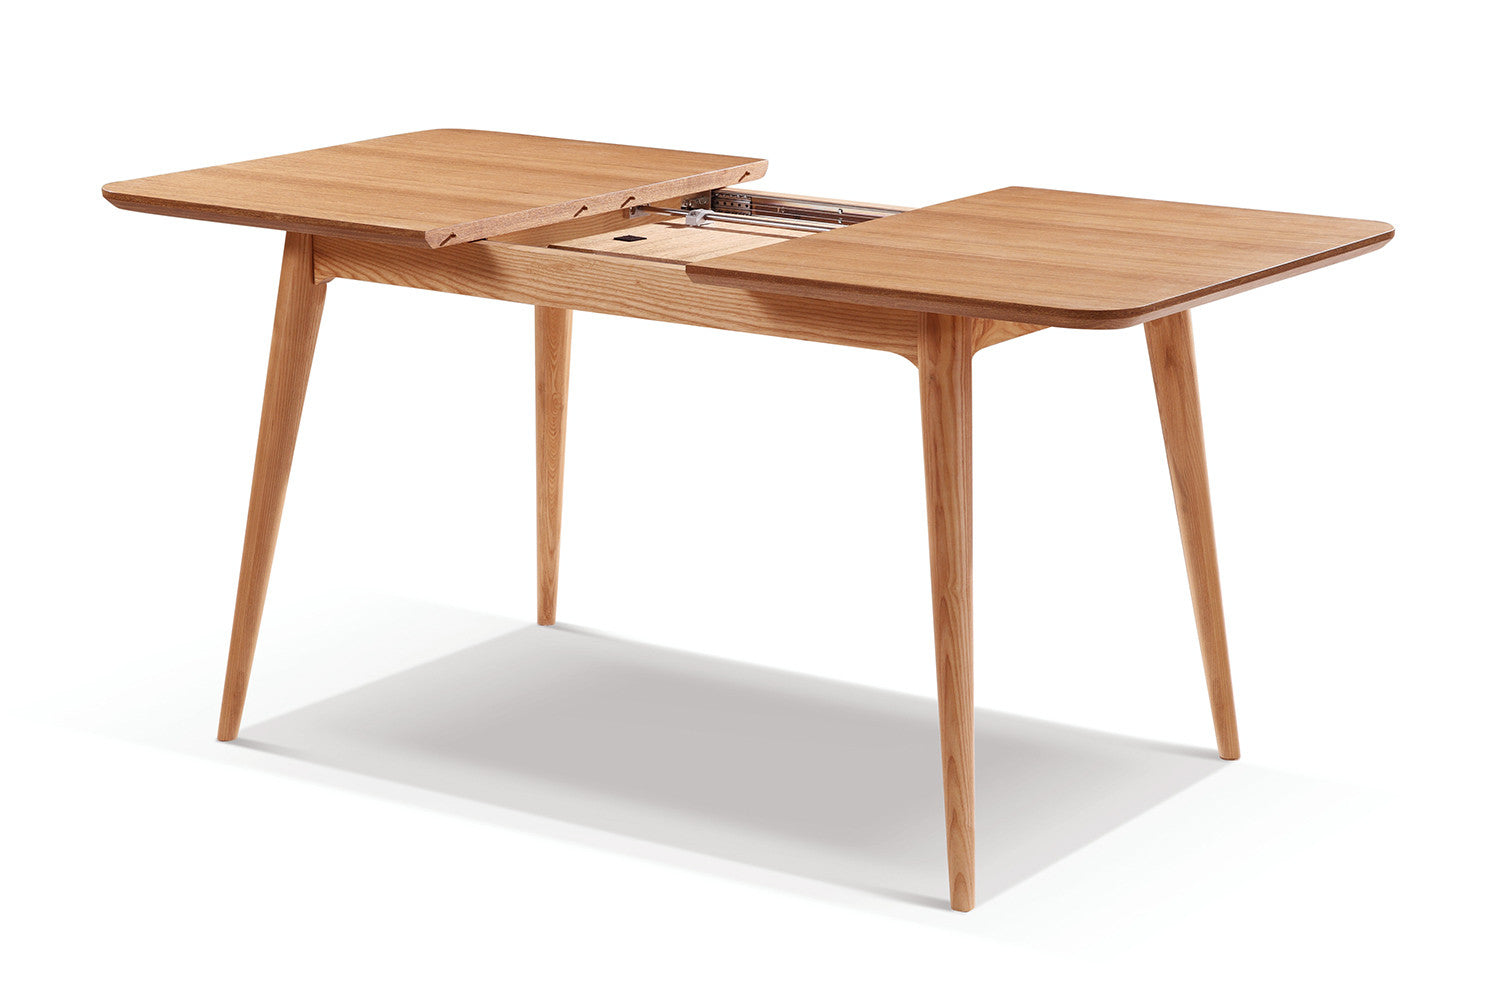 Table de salle manger extensible en bois adda dewarens for Solde table a manger